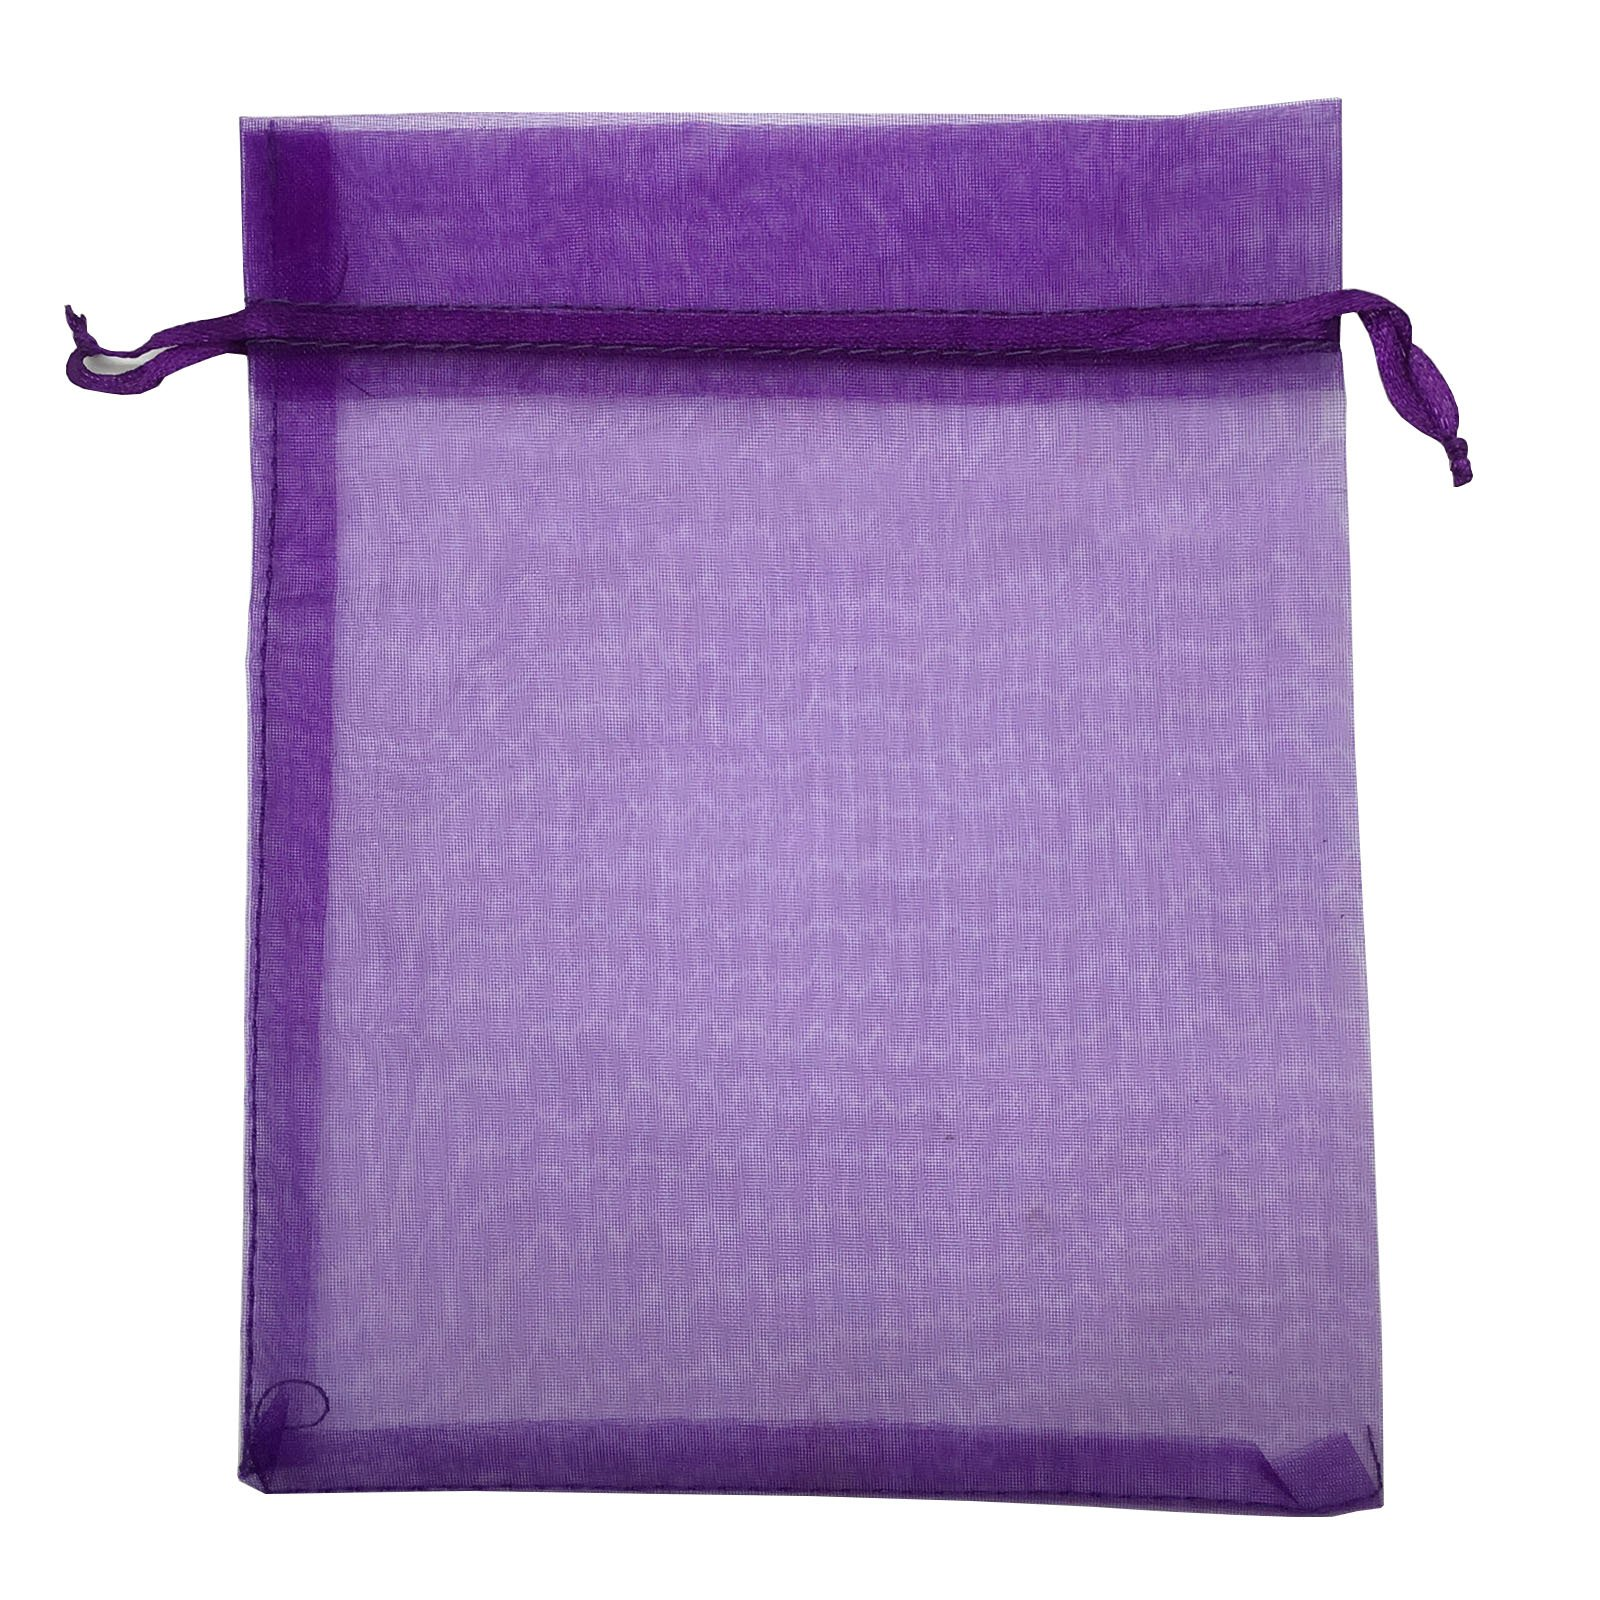 Sosam 100PCS 6x9 Inches Organza Drawstring Pouches Jewelry Party Wedding Favor Gift Bags (6x9'', Purple)